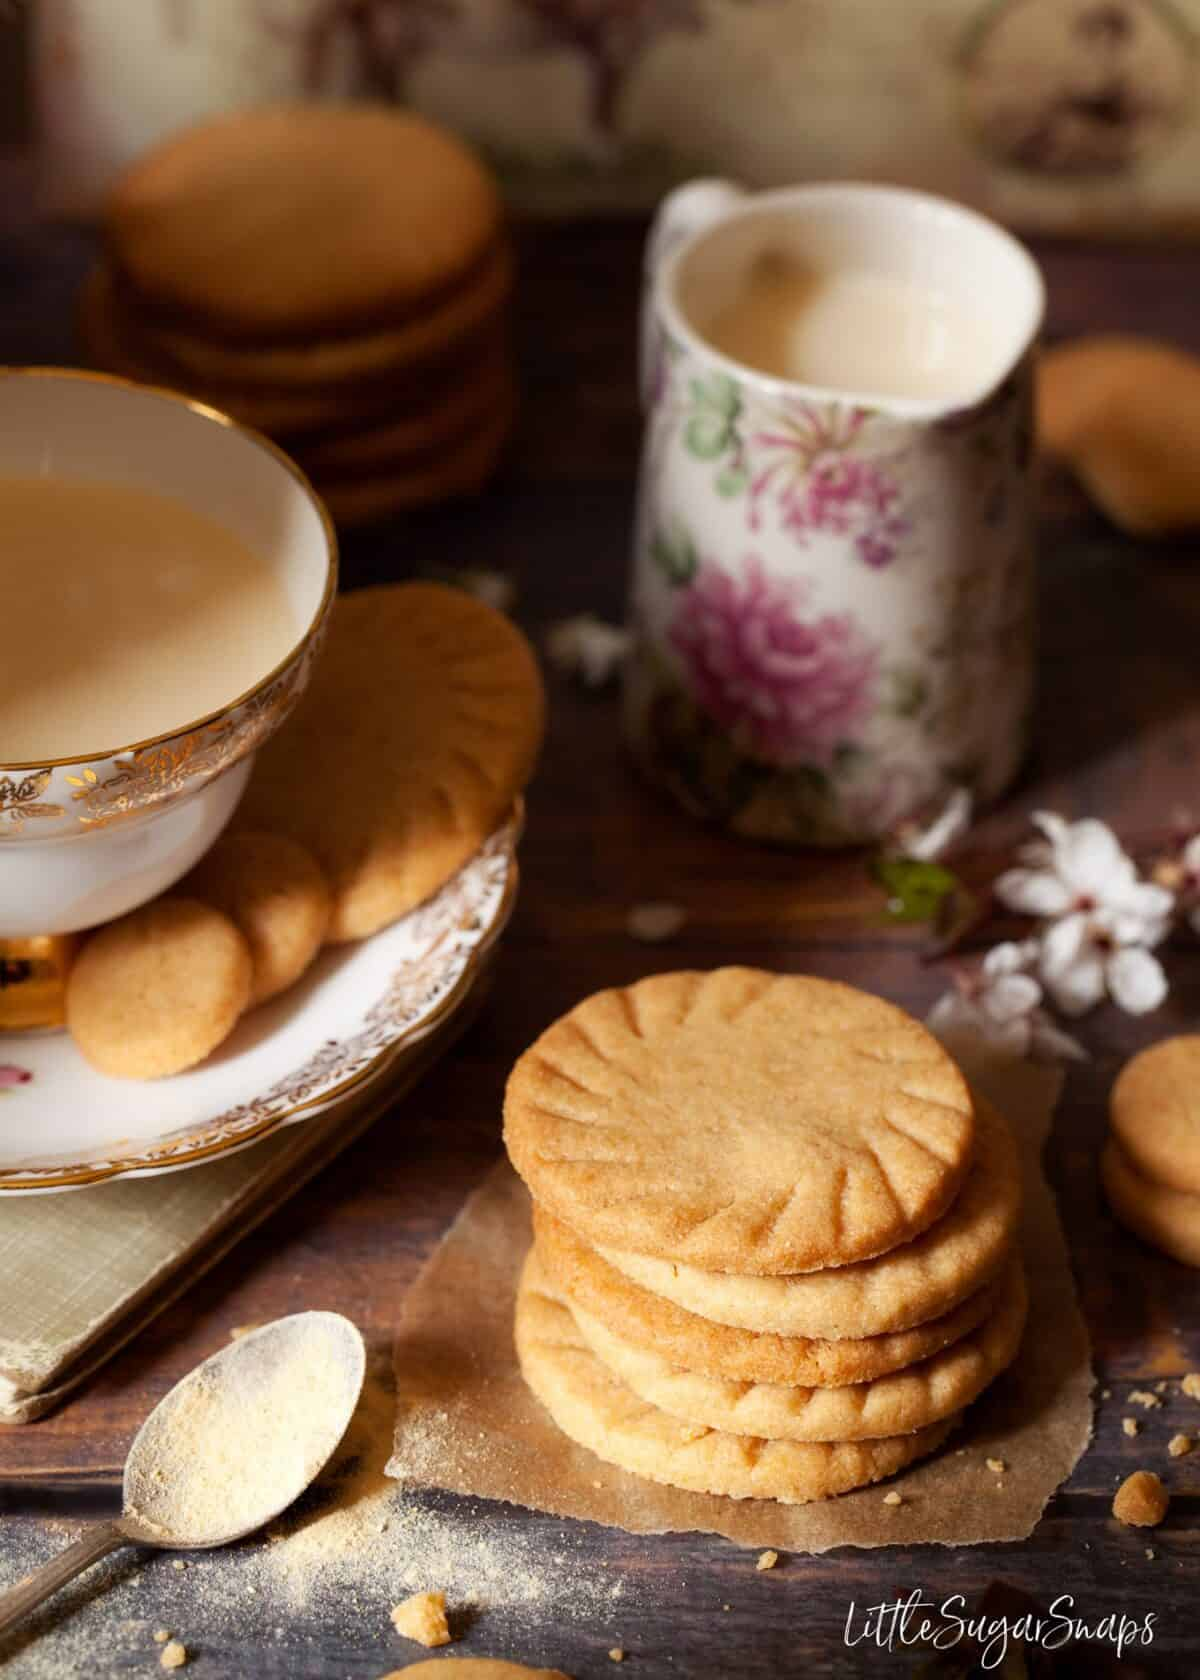 Malted Milk Biscuits with a cup of tea.